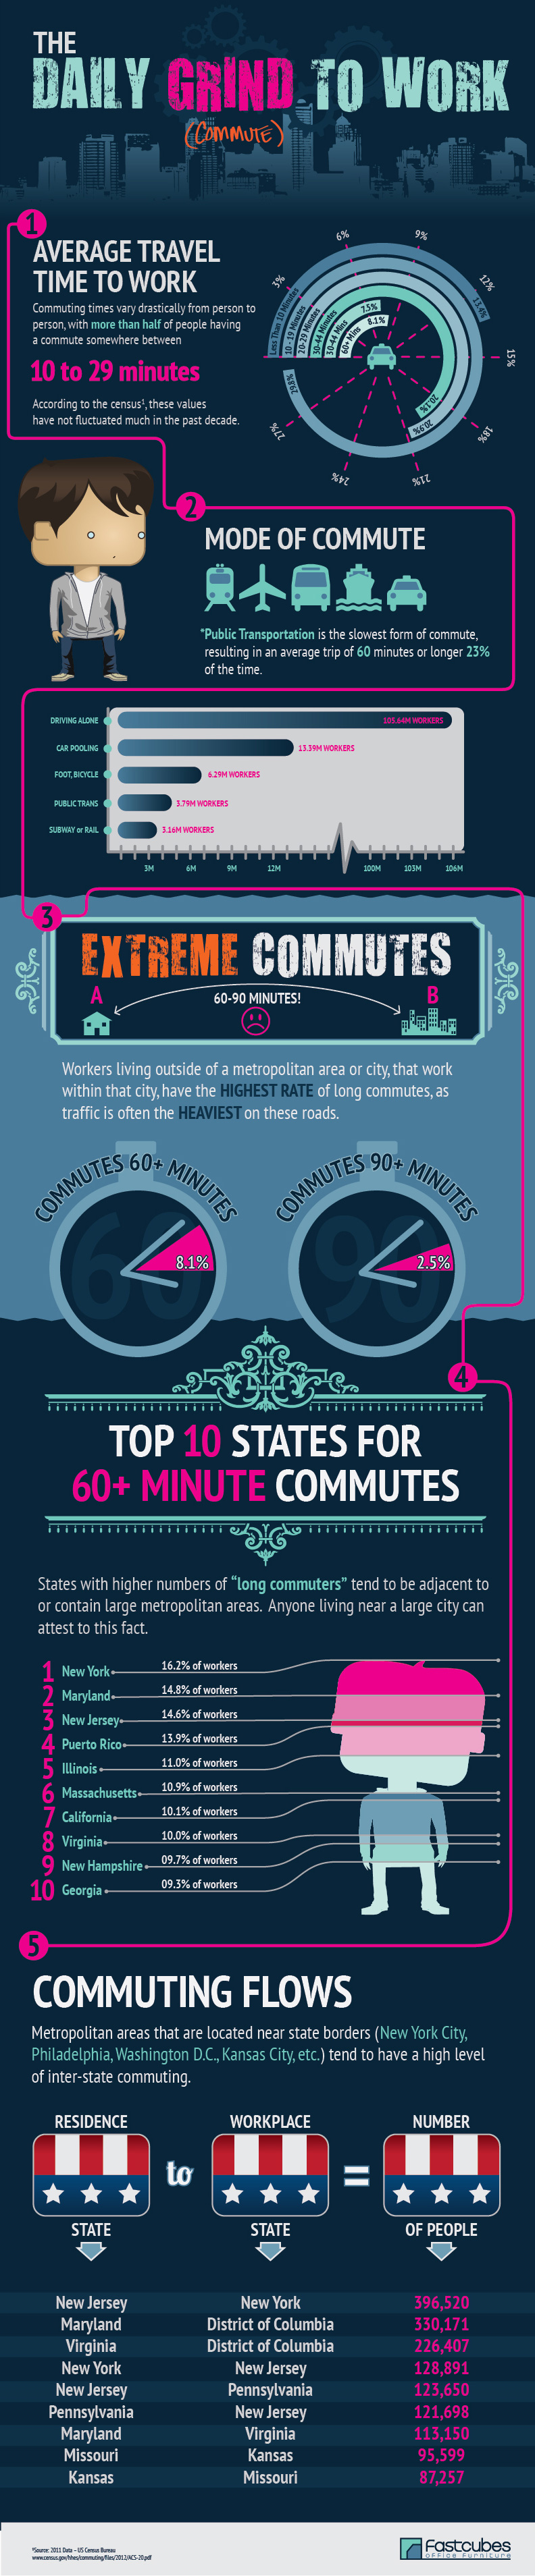 Commuting to Work - A Fastcubes Infographic